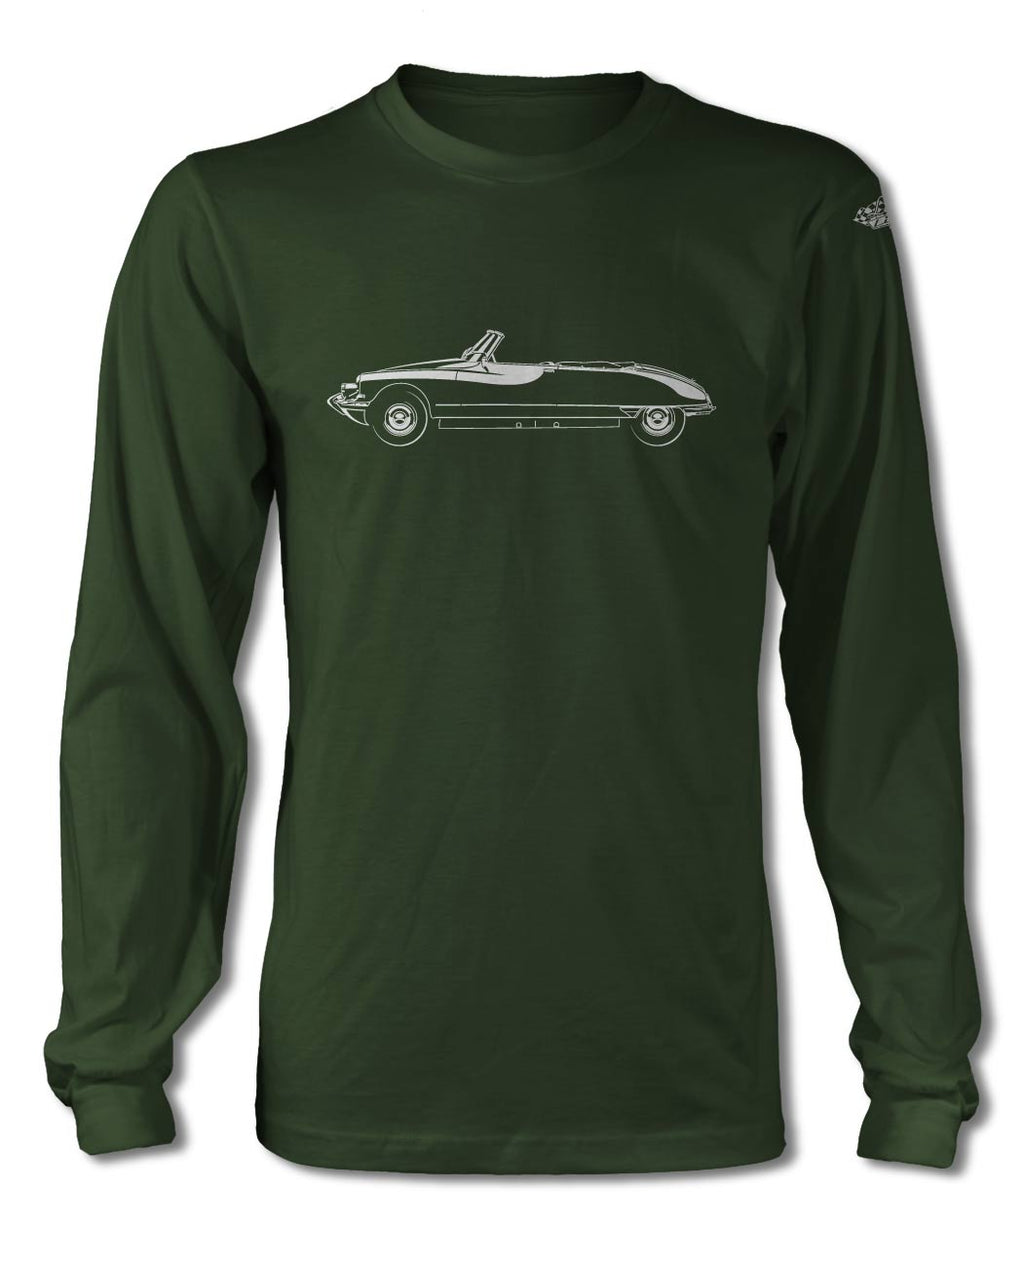 Citroen DS ID 1955 - 1967 Convertible Cabriolet T-Shirt - Long Sleeves - Side View